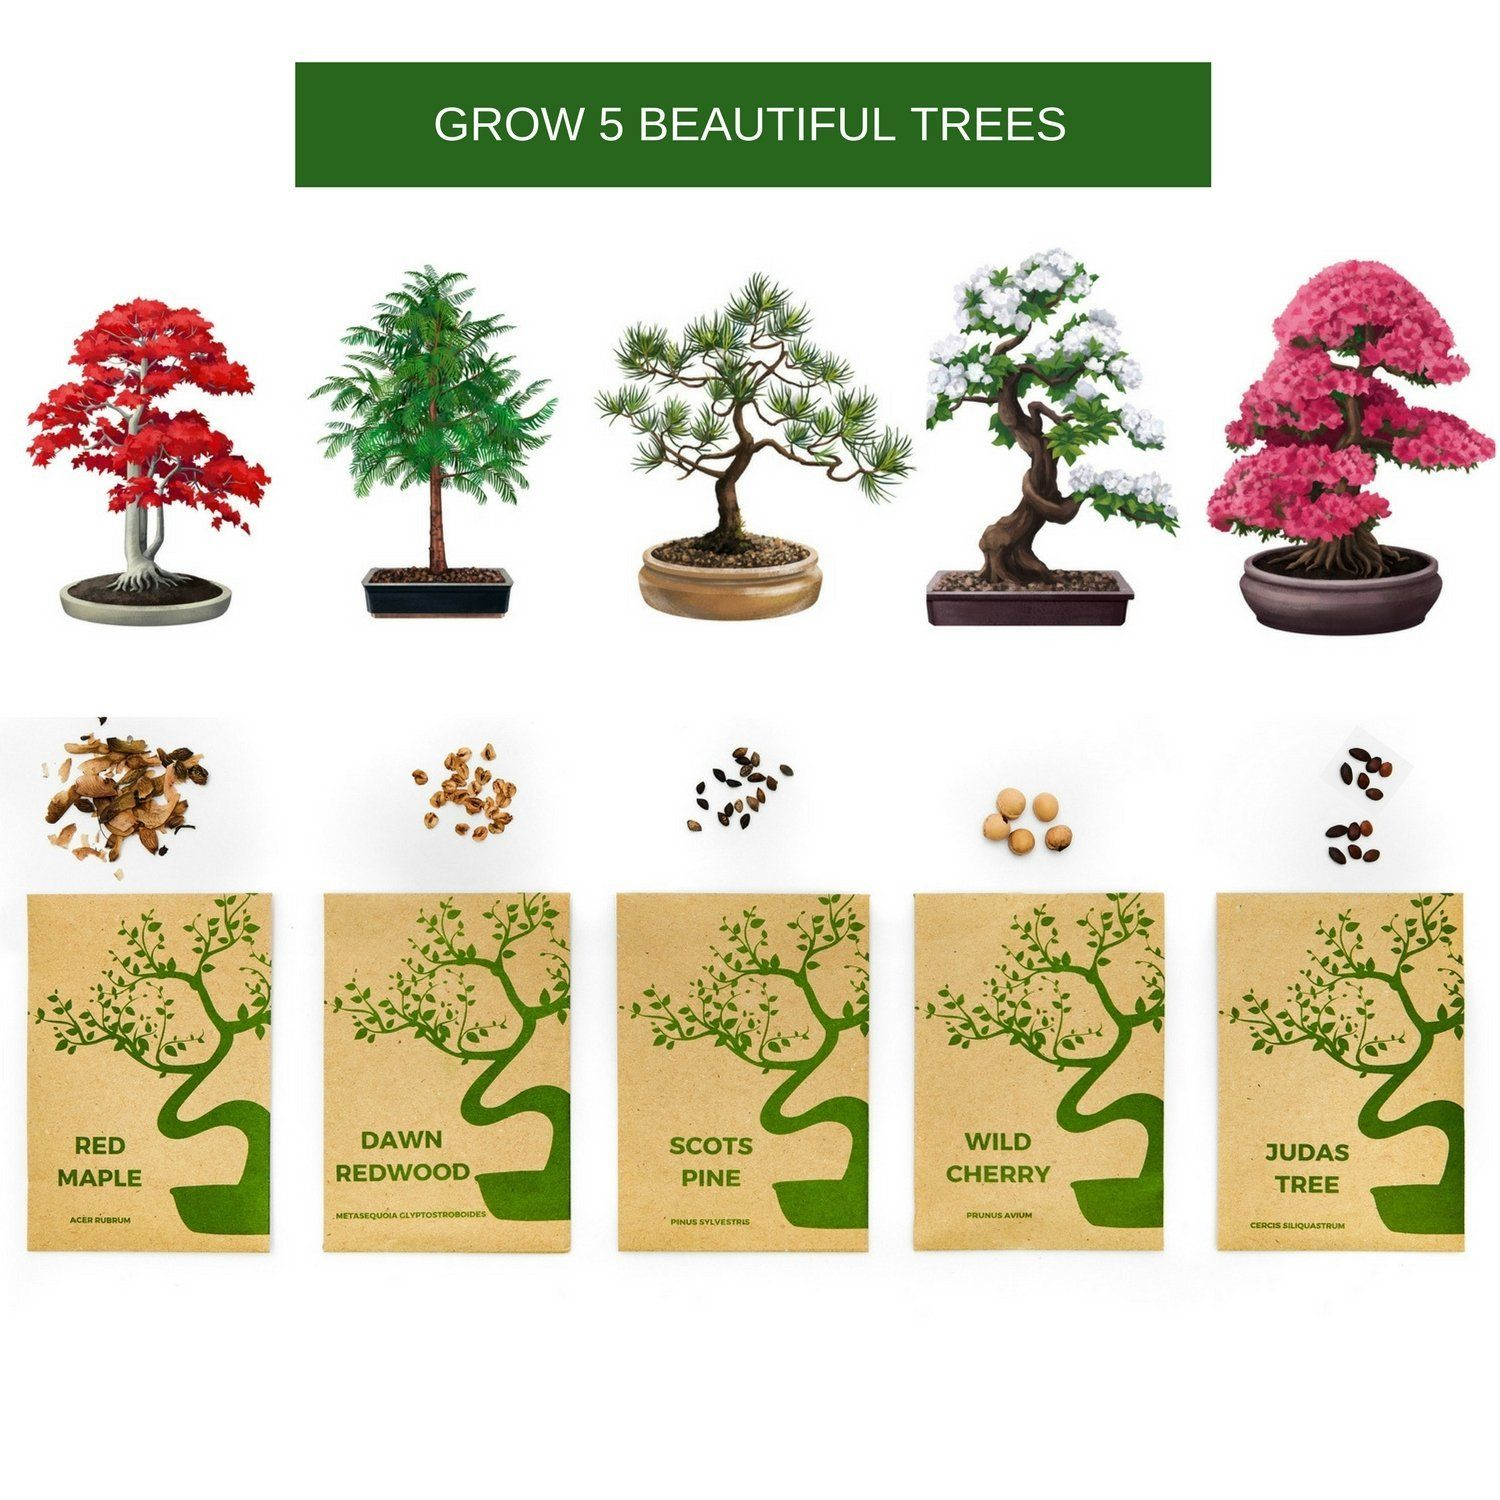 Bonsai Tree Kit Grow Your Own Bonsai Trees From Seeds Gardening Gift Set Includes 5 Tree Species To Plant Indoor Gardening Gift Set Judas Tree Bonsai Tree